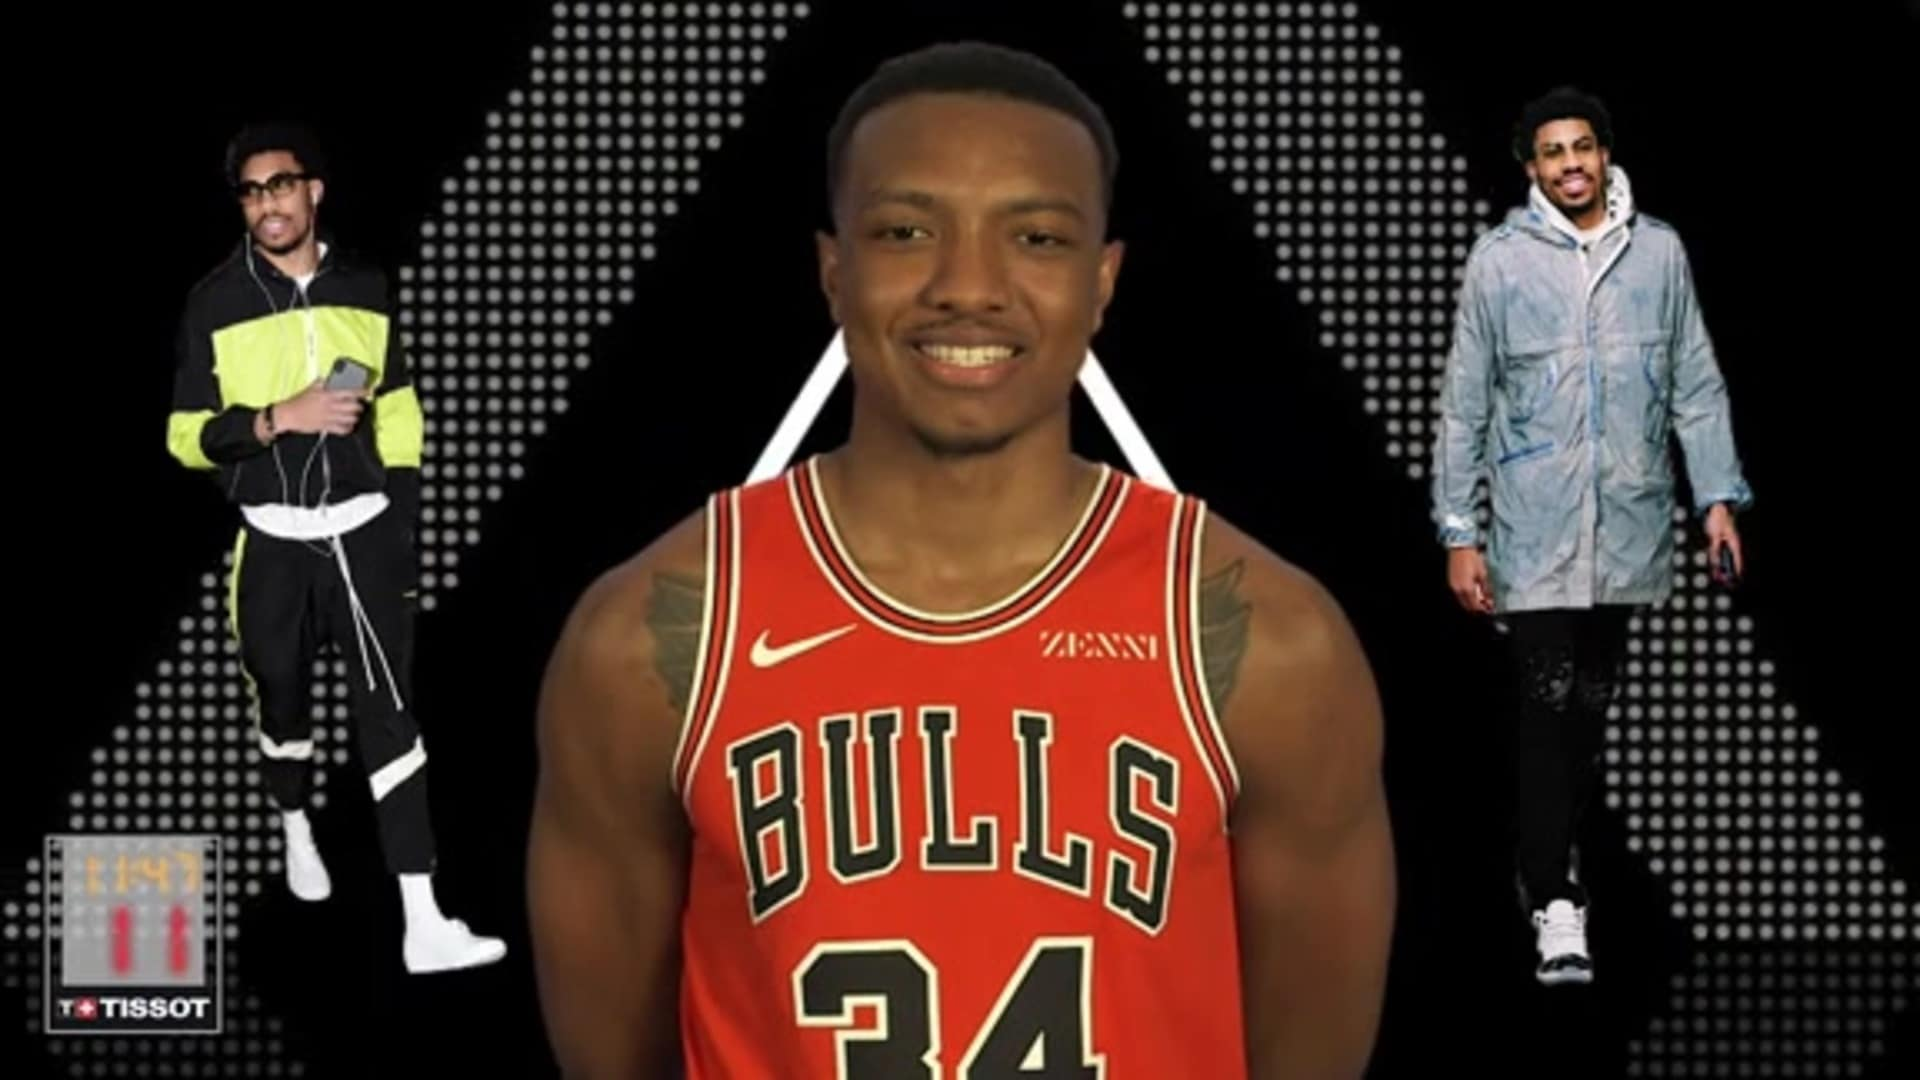 Wendell Carter Jr. - Style In :24 with Tissot